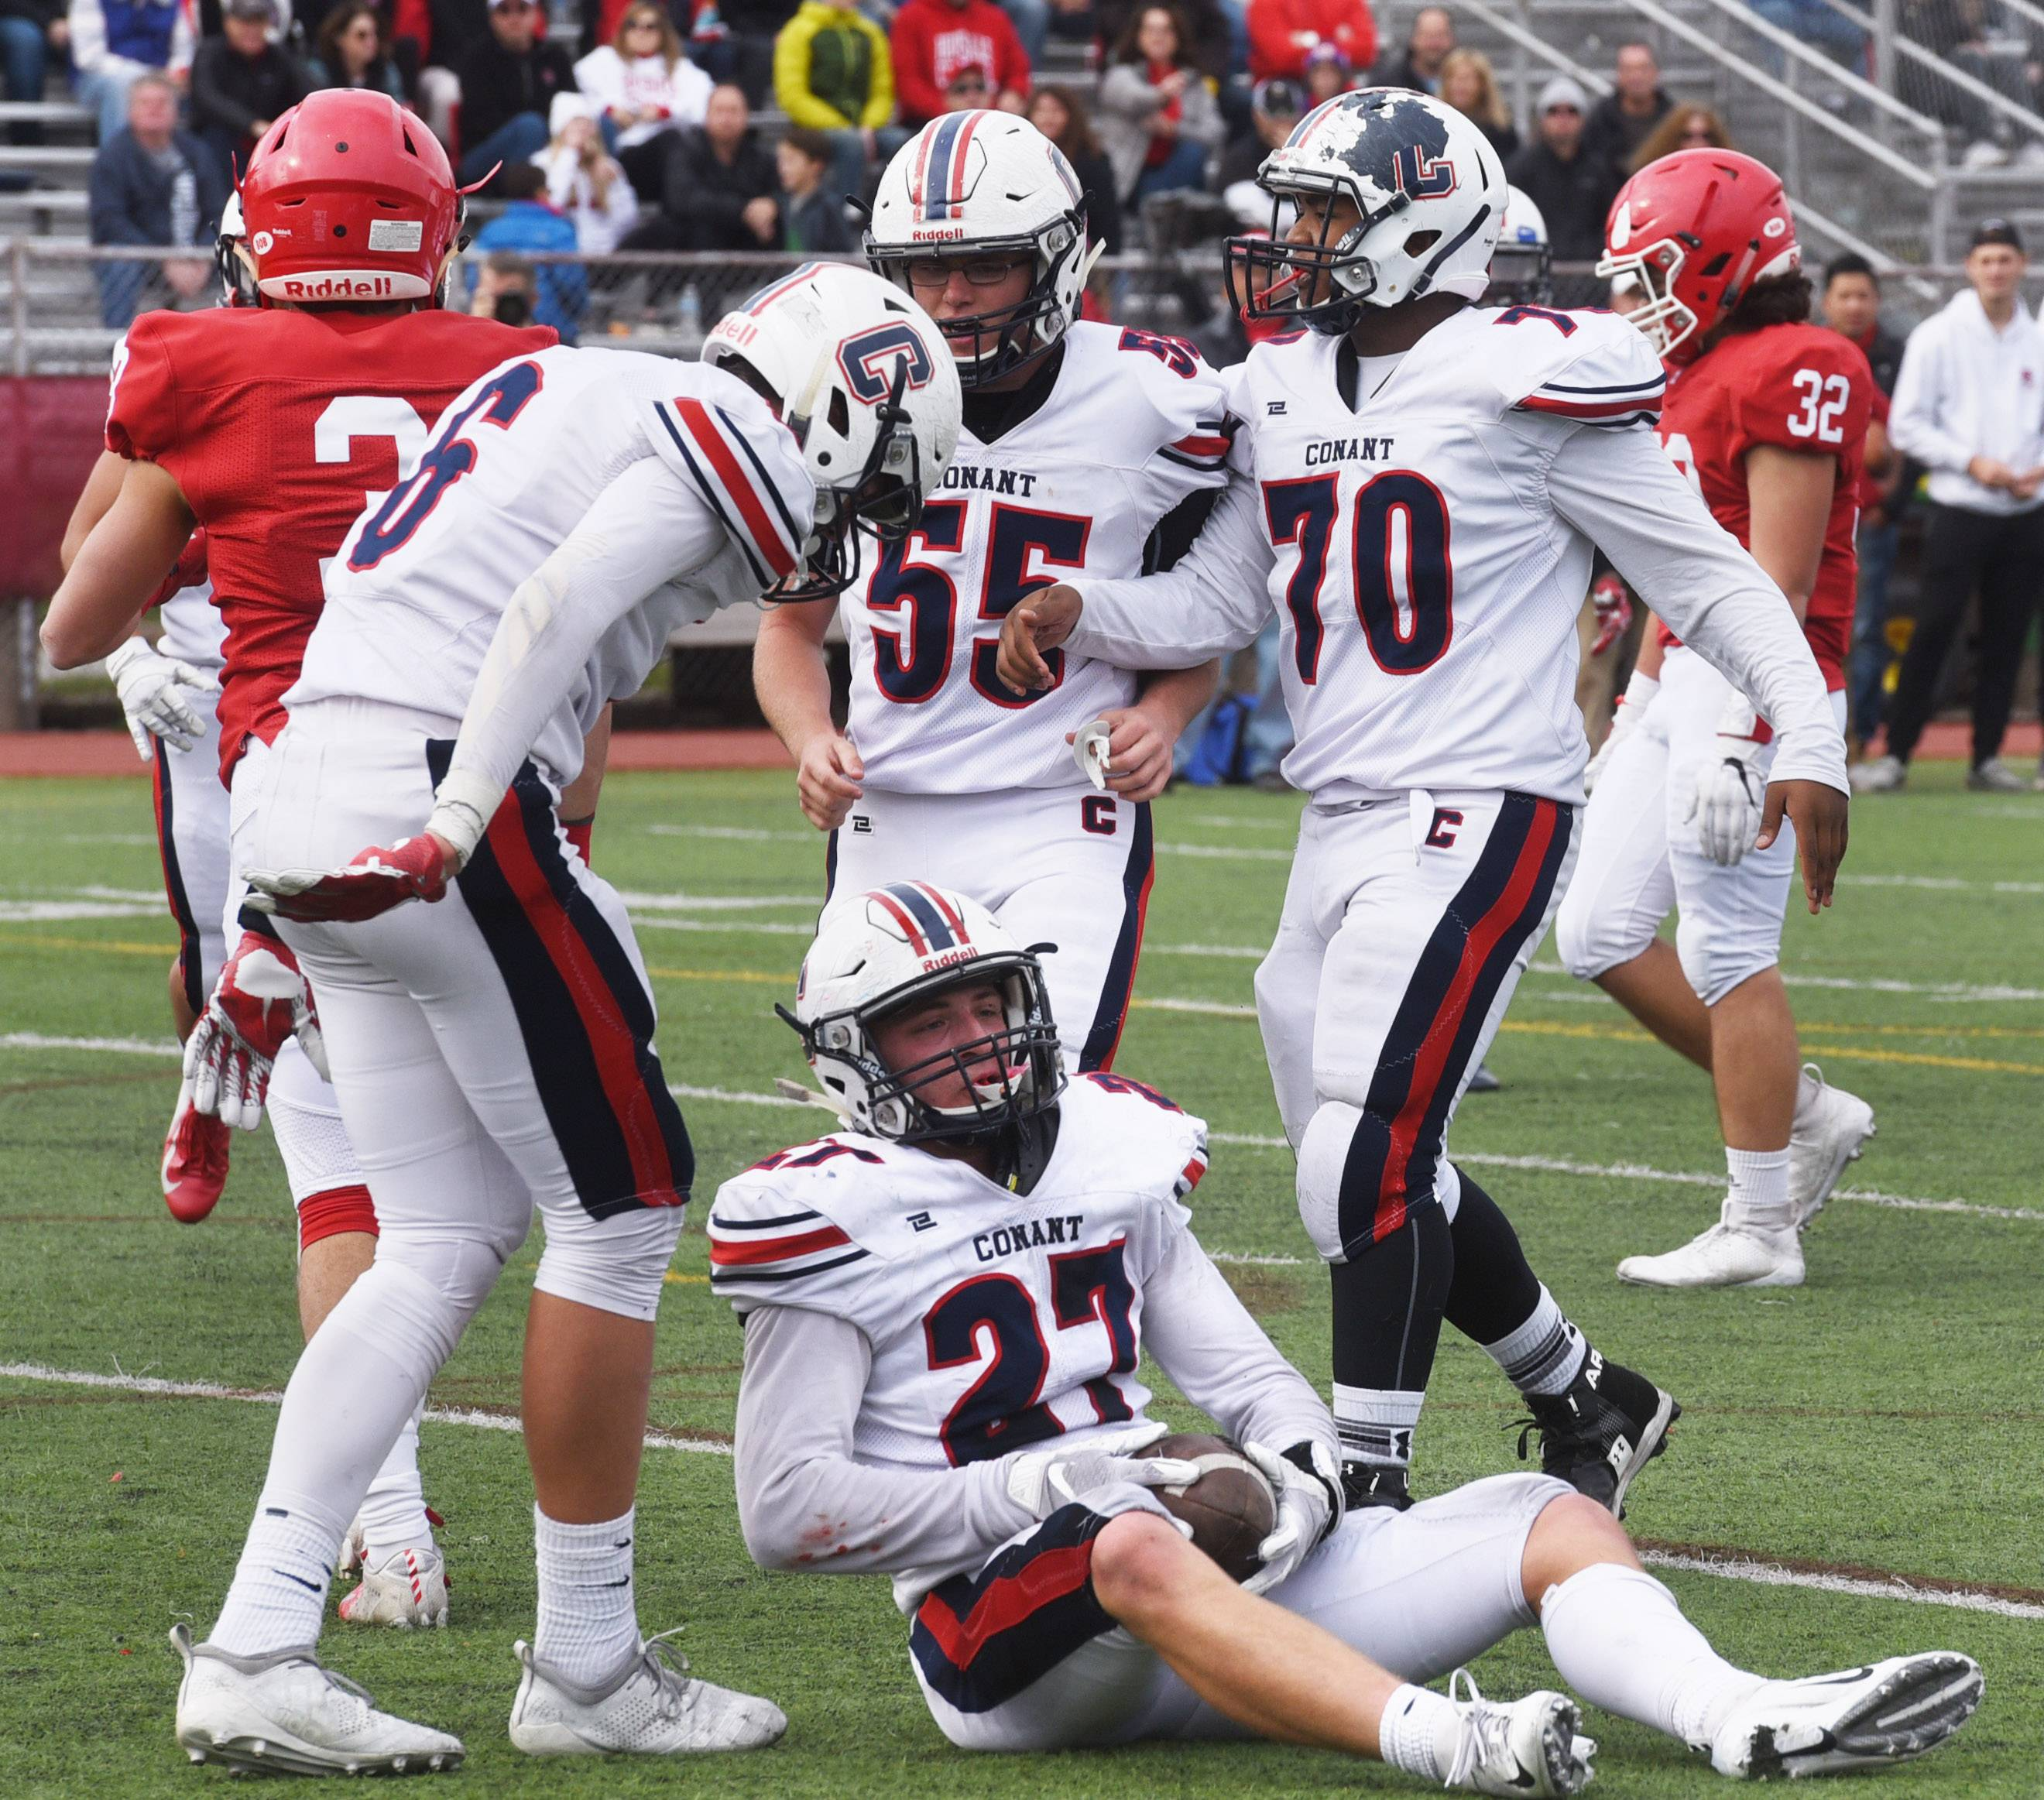 Conant's Anthony Wachal (27) gathers himself after being tackled just past the goal line while scoring a touchdown during Saturday's Class 8A playoff game against Hinsdale Central.